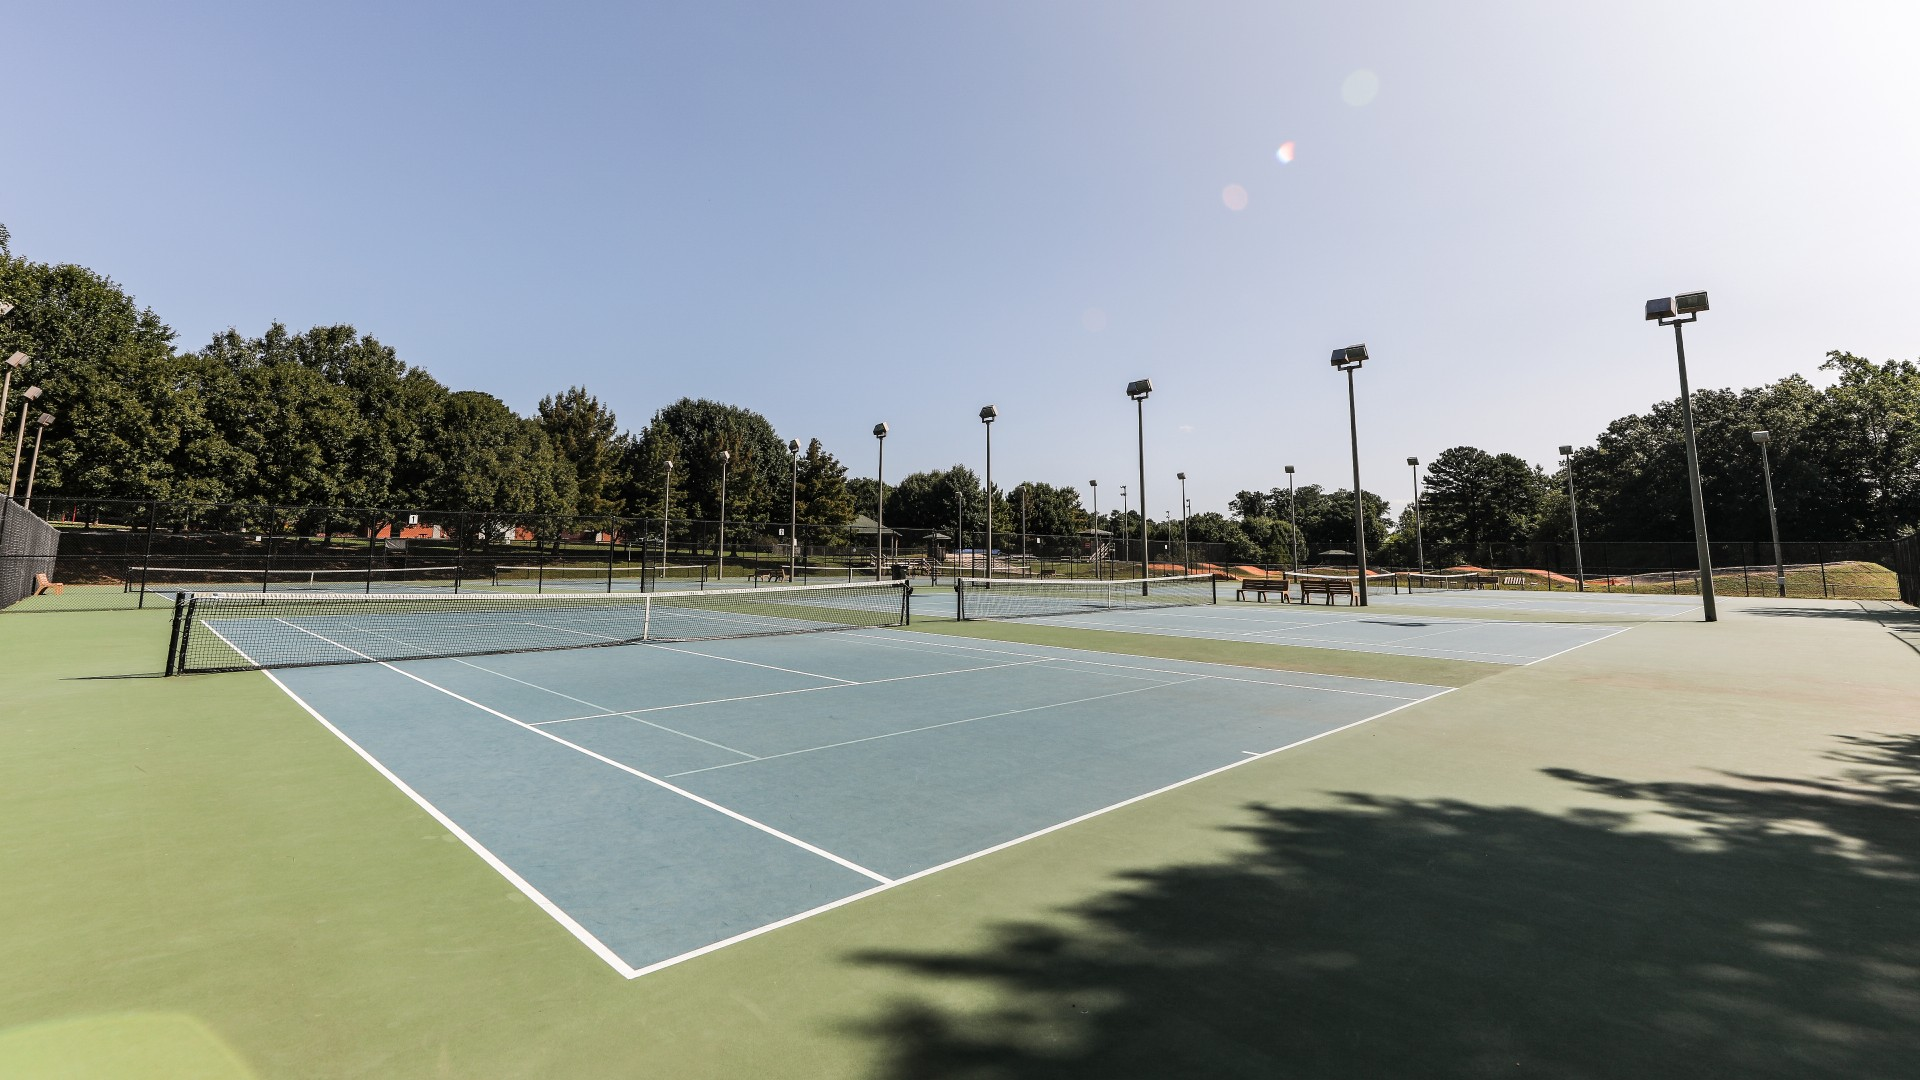 A shot of the eight outdoor tennis courts at Lions Park